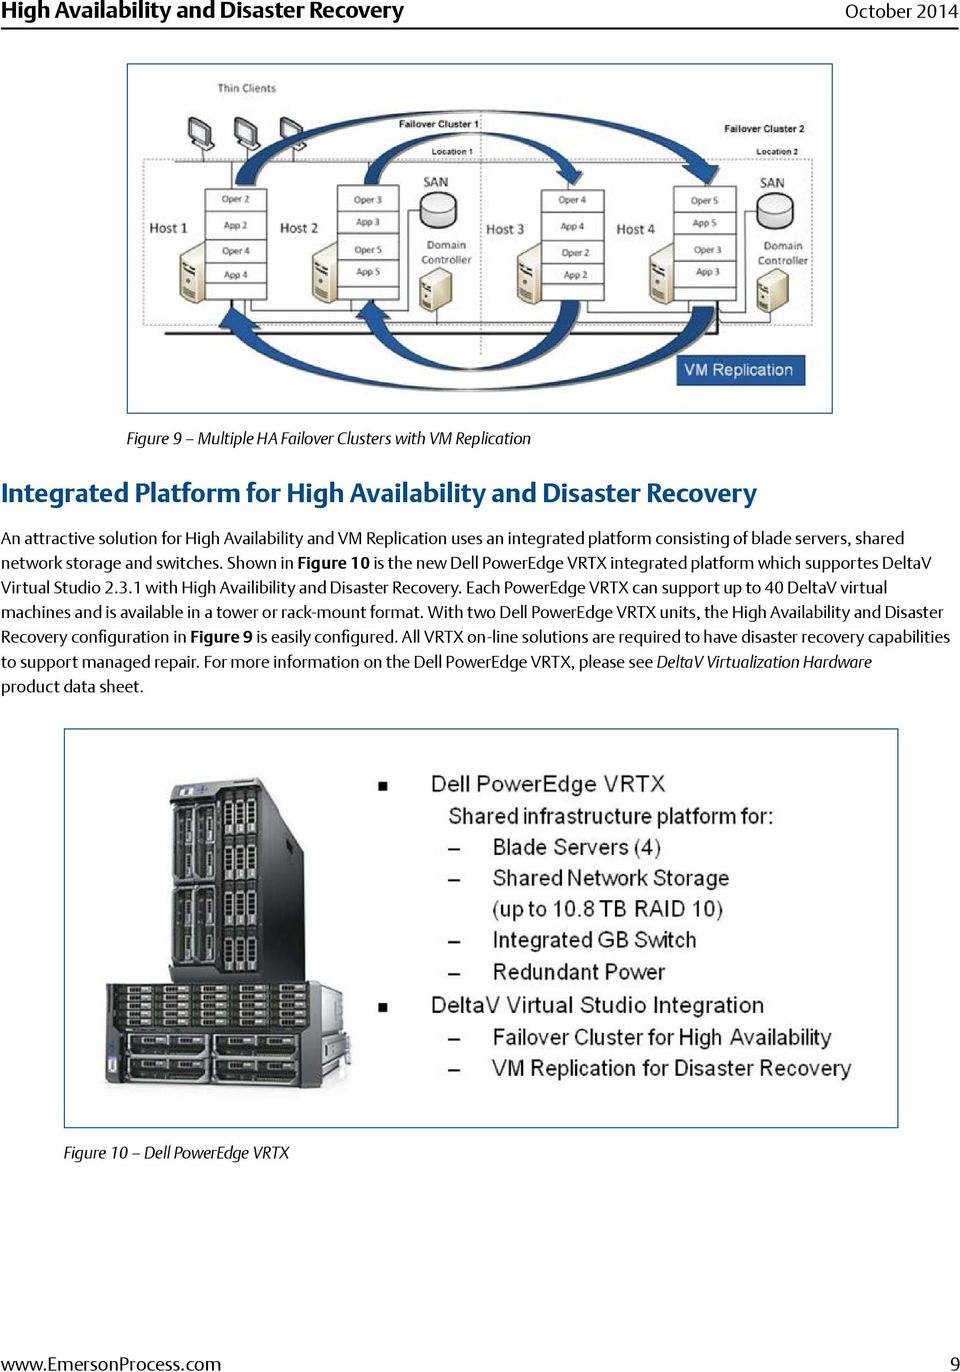 1 with High Availibility and Disaster Recovery. Each PowerEdge VRTX can support up to 40 DeltaV virtual machines and is available in a tower or rack-mount format.